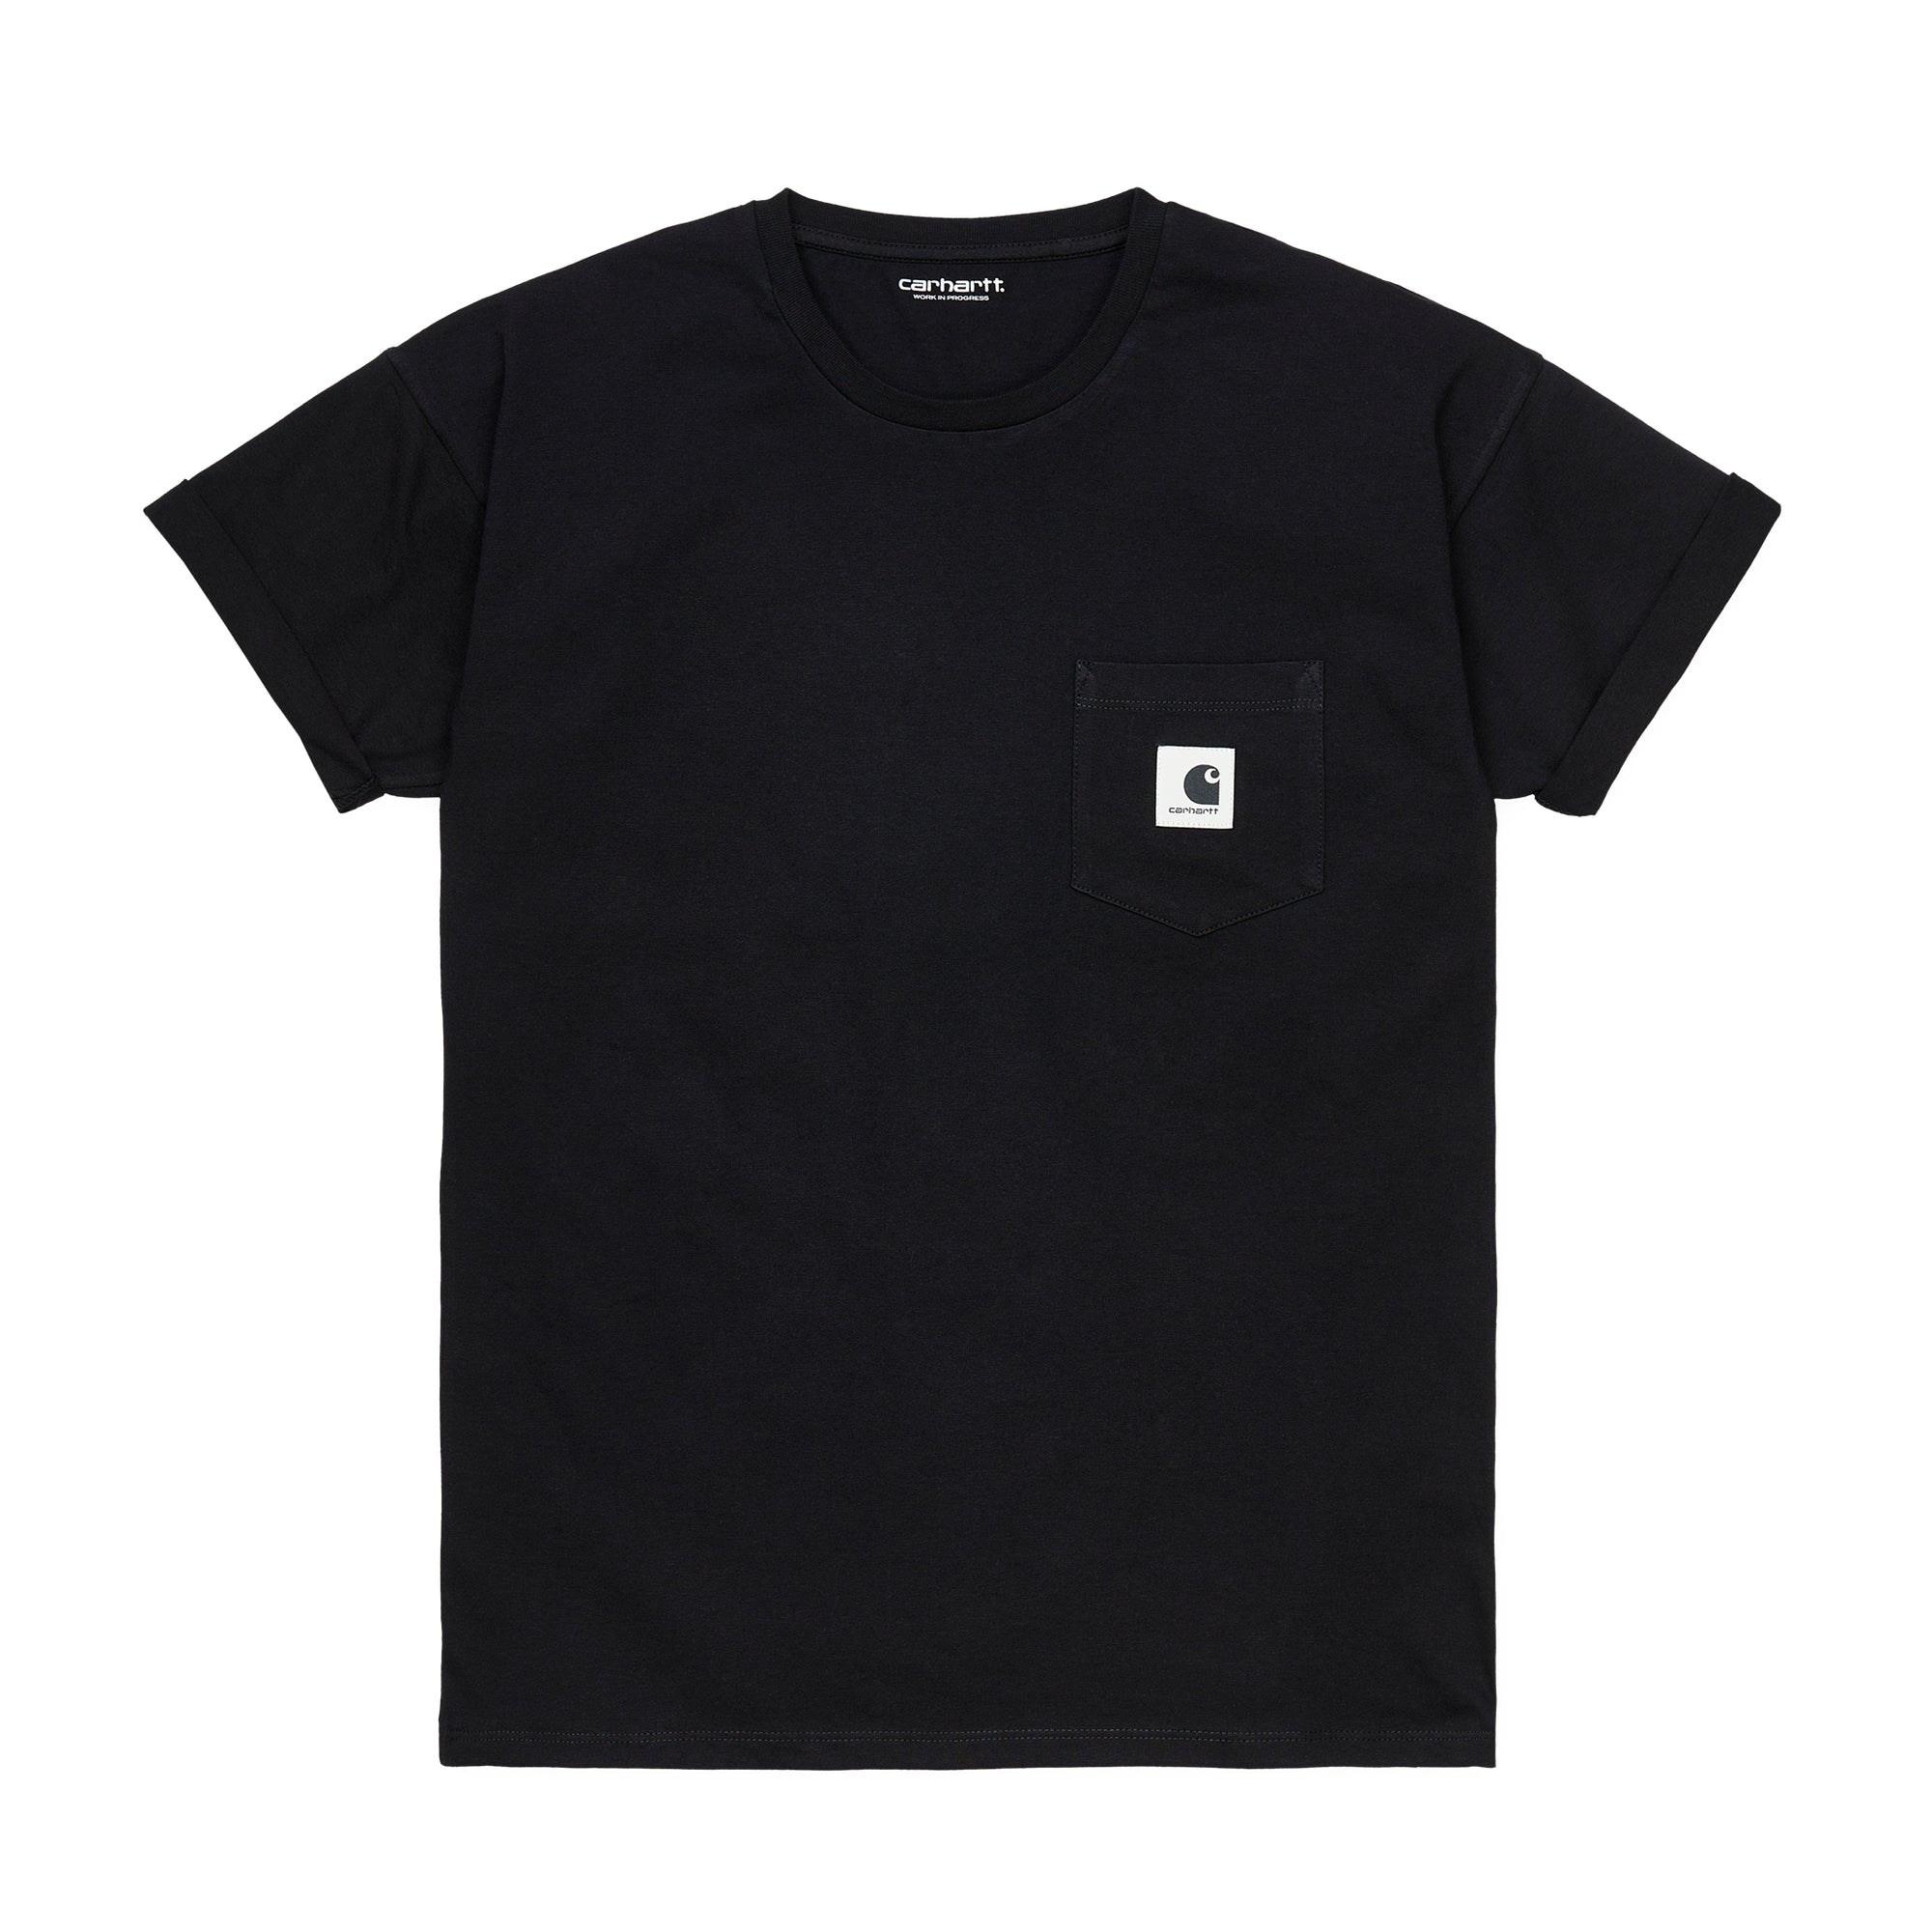 Carhartt WIP Womens Pocket T-Shirt: Black - The Union Project